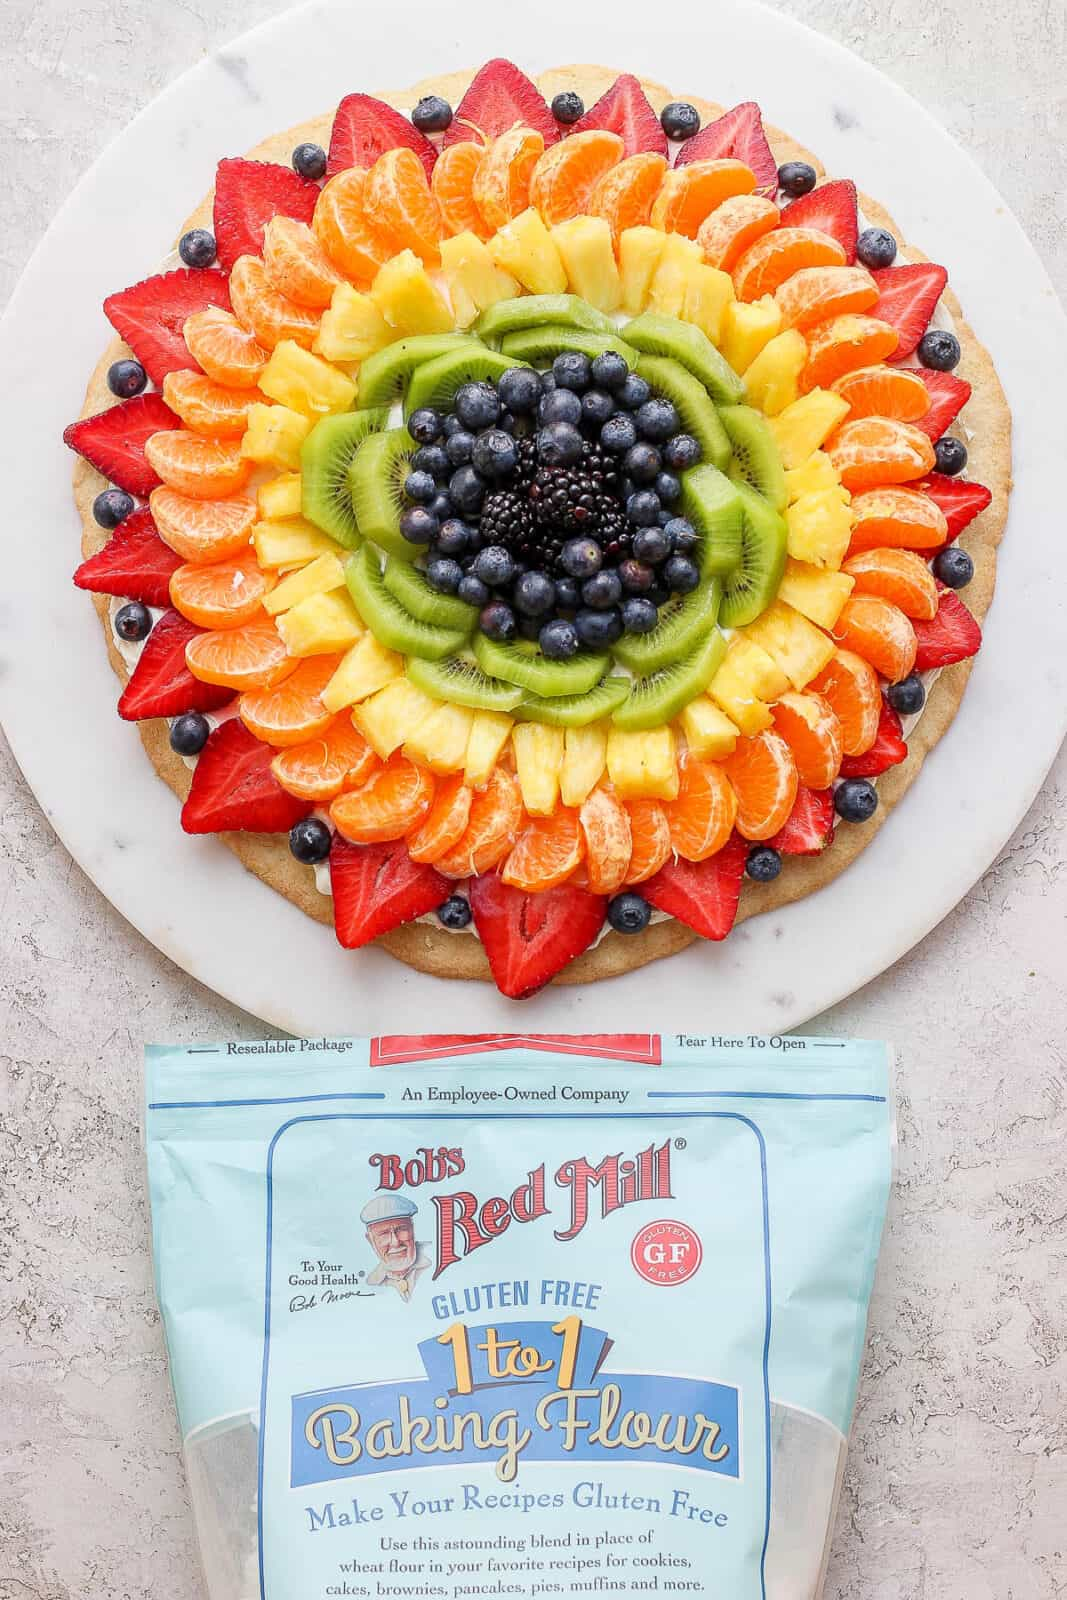 A fruit pizza and a package of Bob's Red Mill gluten free flour.